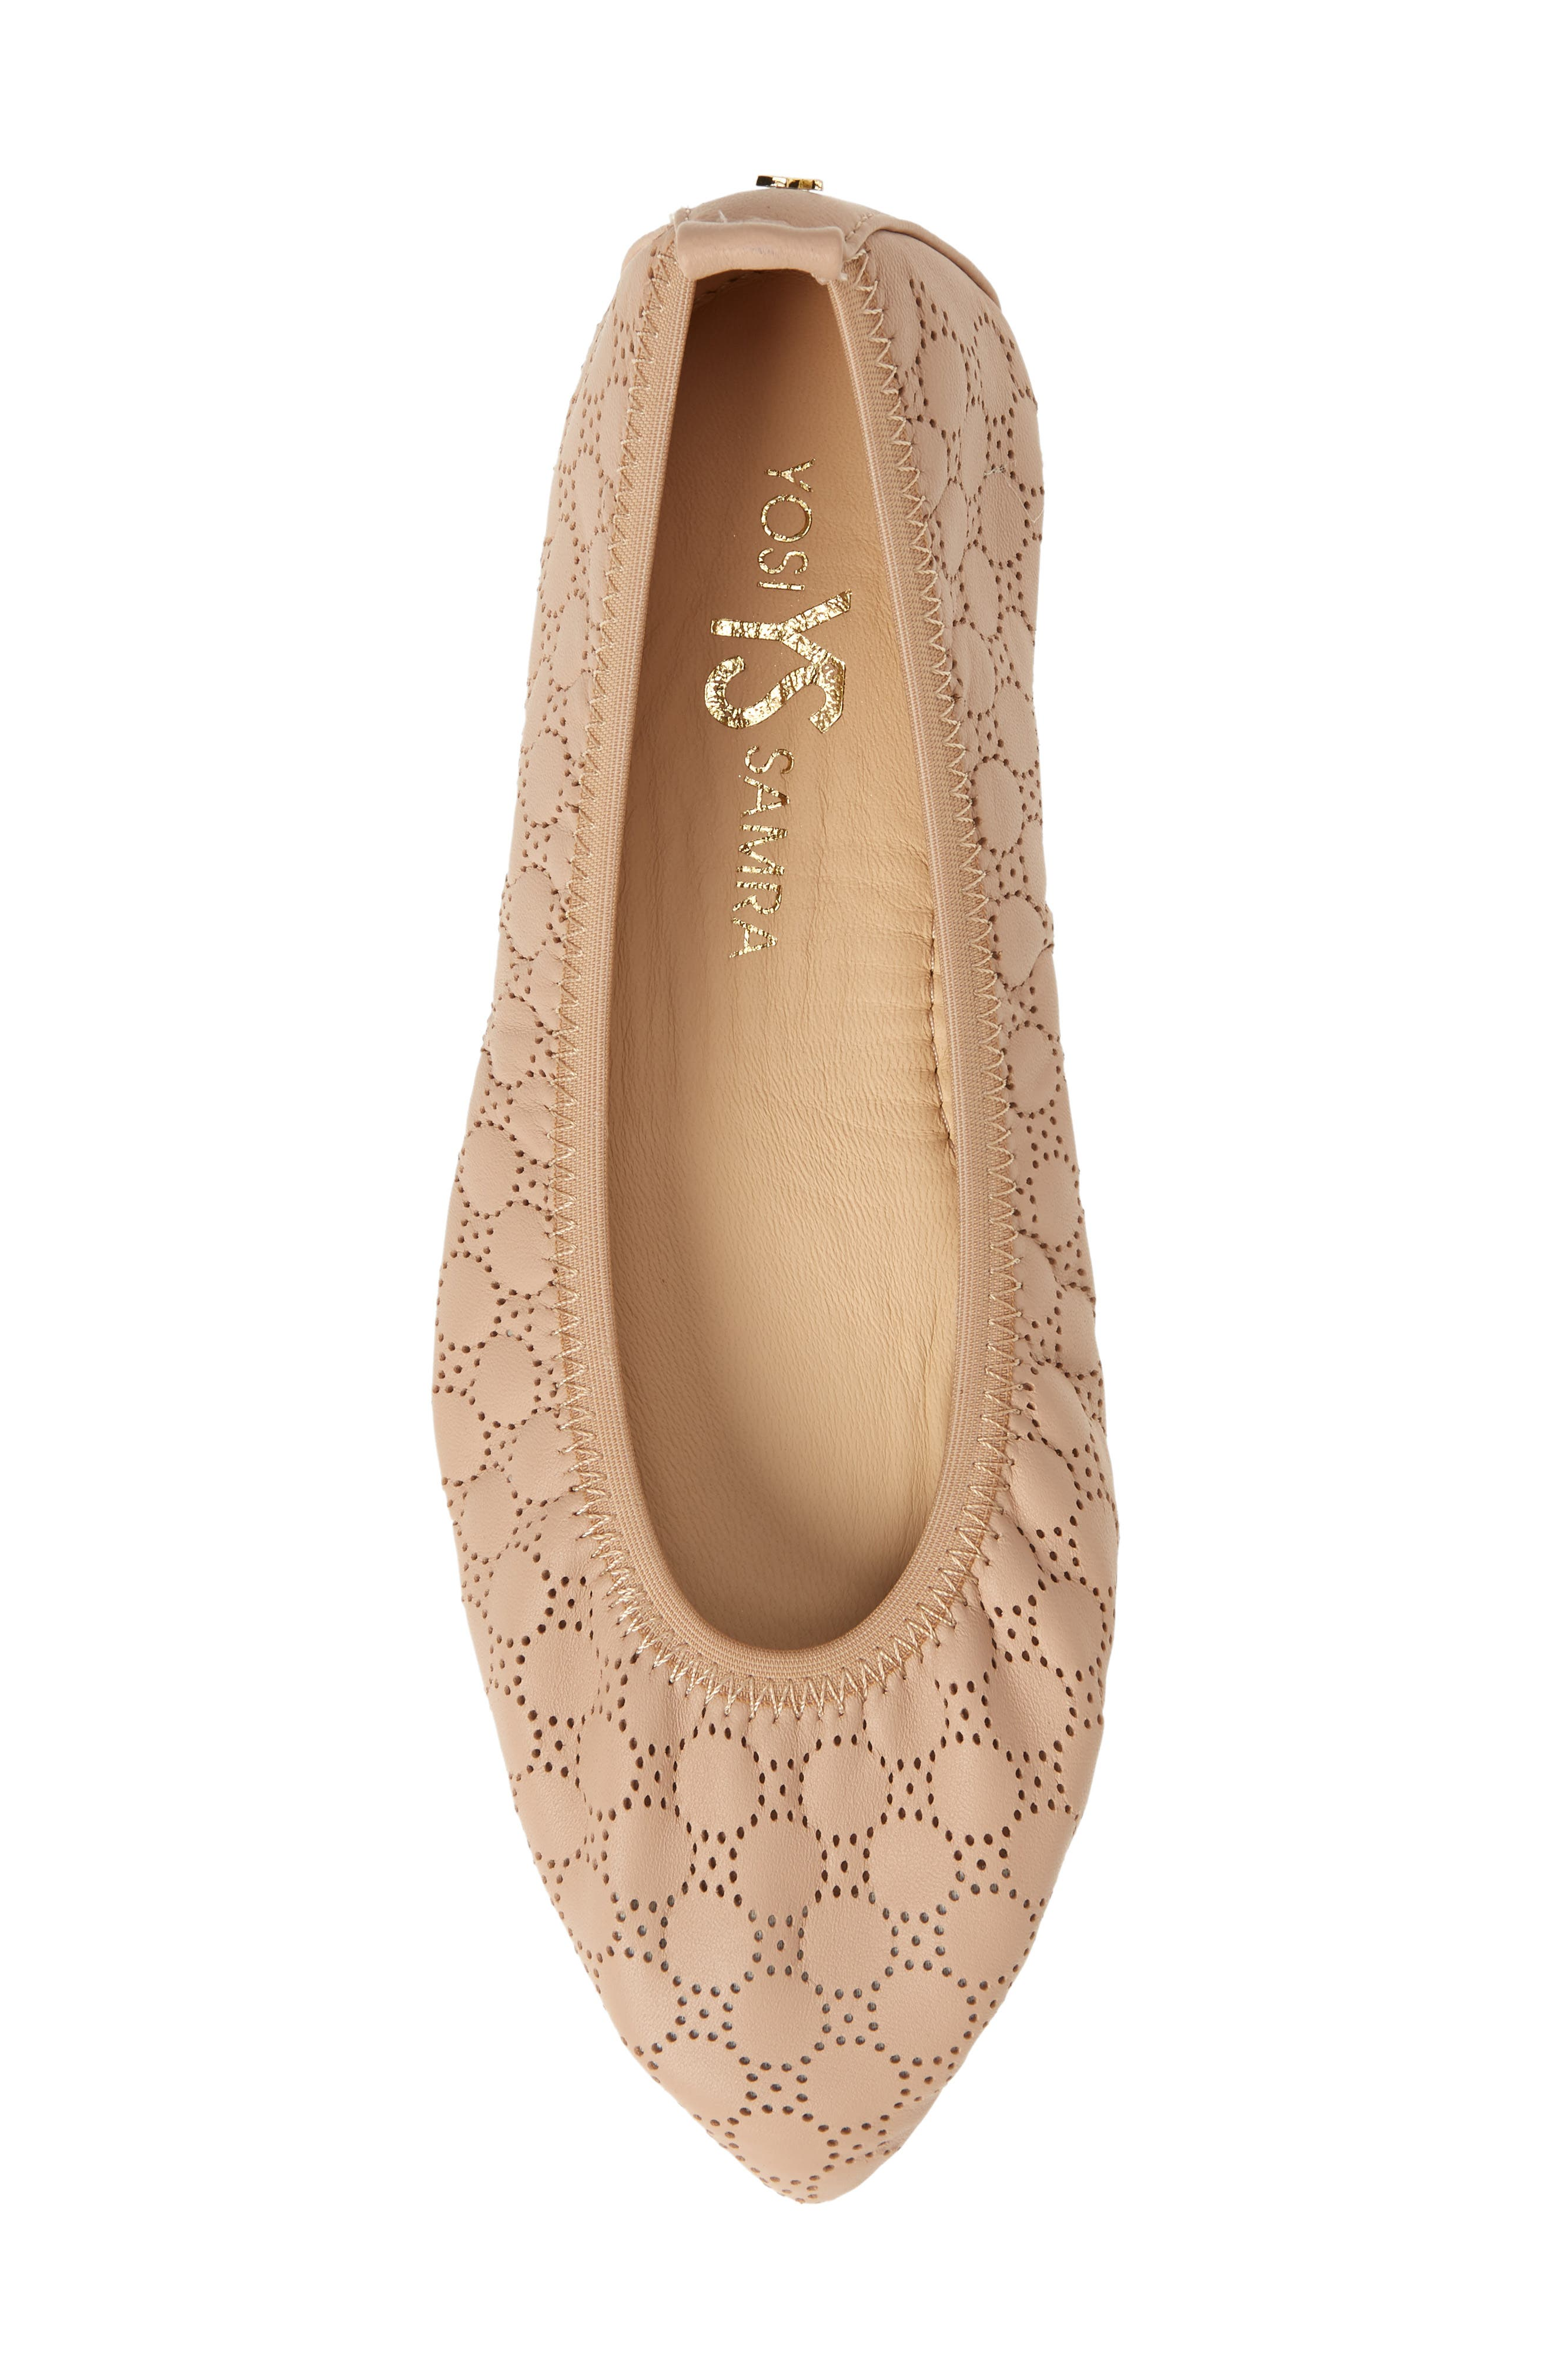 Vince Foldable Ballet Flat,                             Alternate thumbnail 5, color,                             Nude Circle Perforated Leather